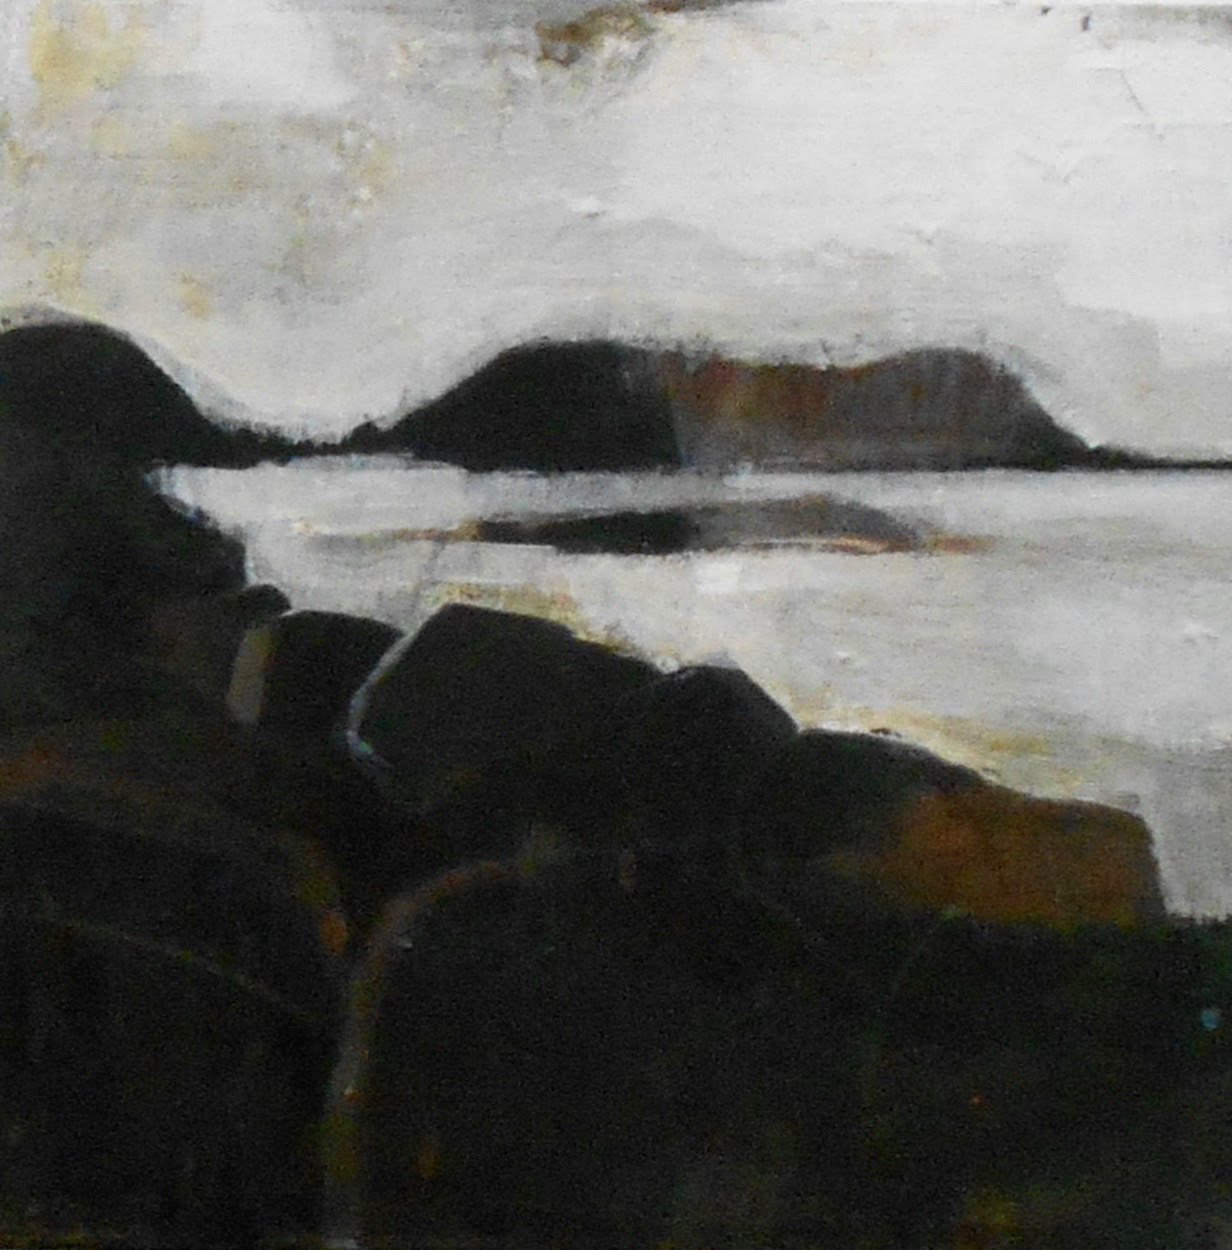 """""""""""Monhegan (Manana)"""" (mixed media on canvas), by Tom Hall, in his Aug. 11-Sept. 8 show at the Corey Daniels Gallery, Wells, Maine. The """"Monhegan"""" referenced is an island about 12 miles off the Maine Coast that's renowned as a art center and fishermen's harbor. For a, well, cheerier look at it, see the picture below."""